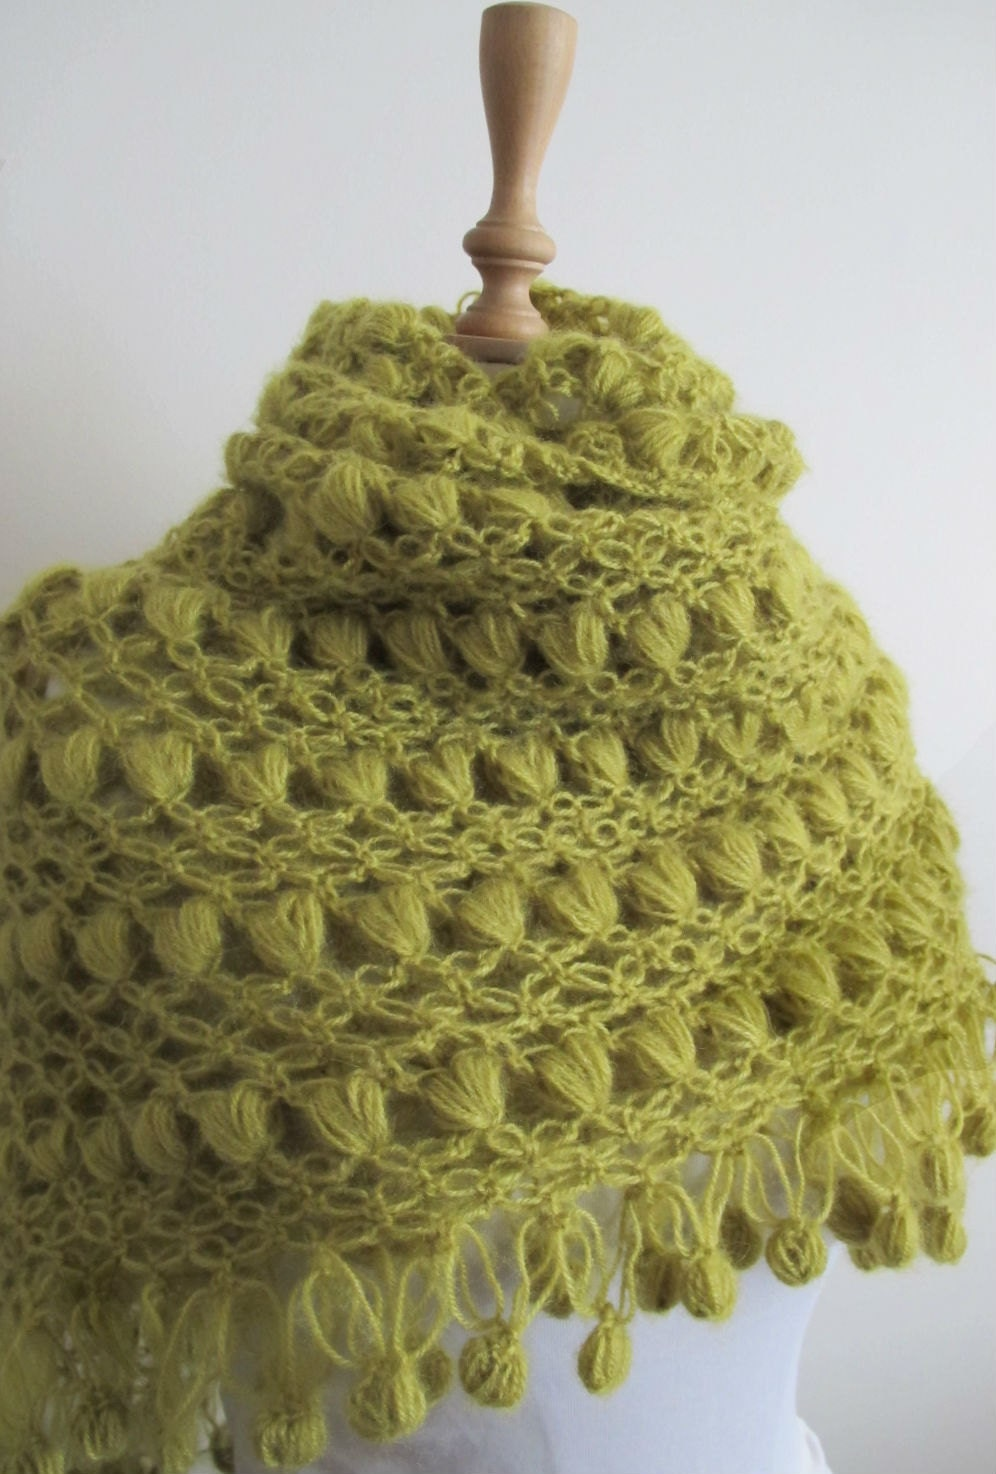 Crochet And Knitting Patterns : Free Knit & Crochet Scarf & Hat free online knitting patterns Crochet...